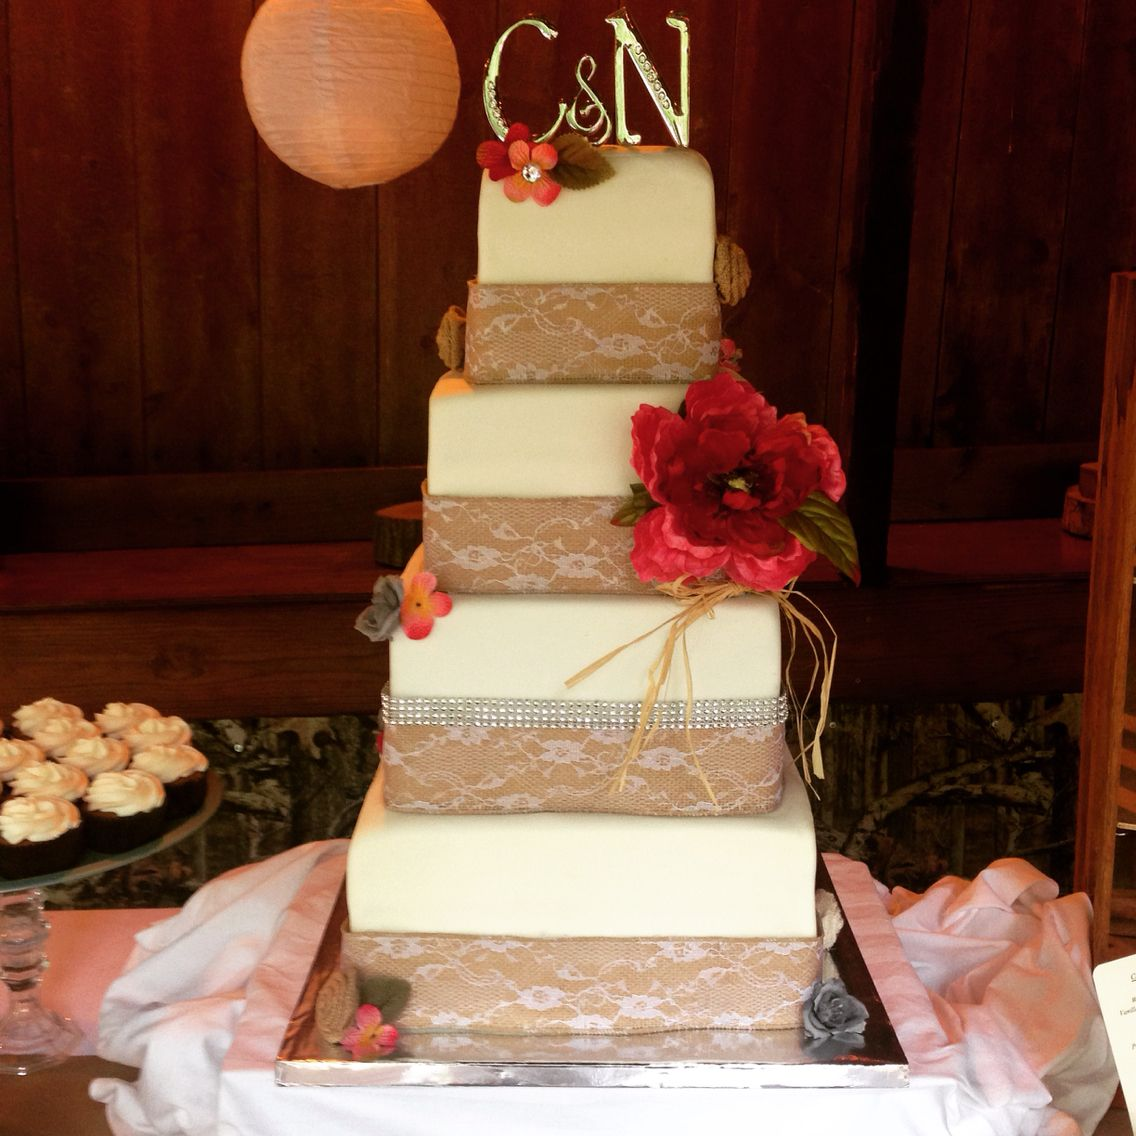 4 Tier Square Rustic Country Wedding Cake With Burlap Lace And Crystal Accents